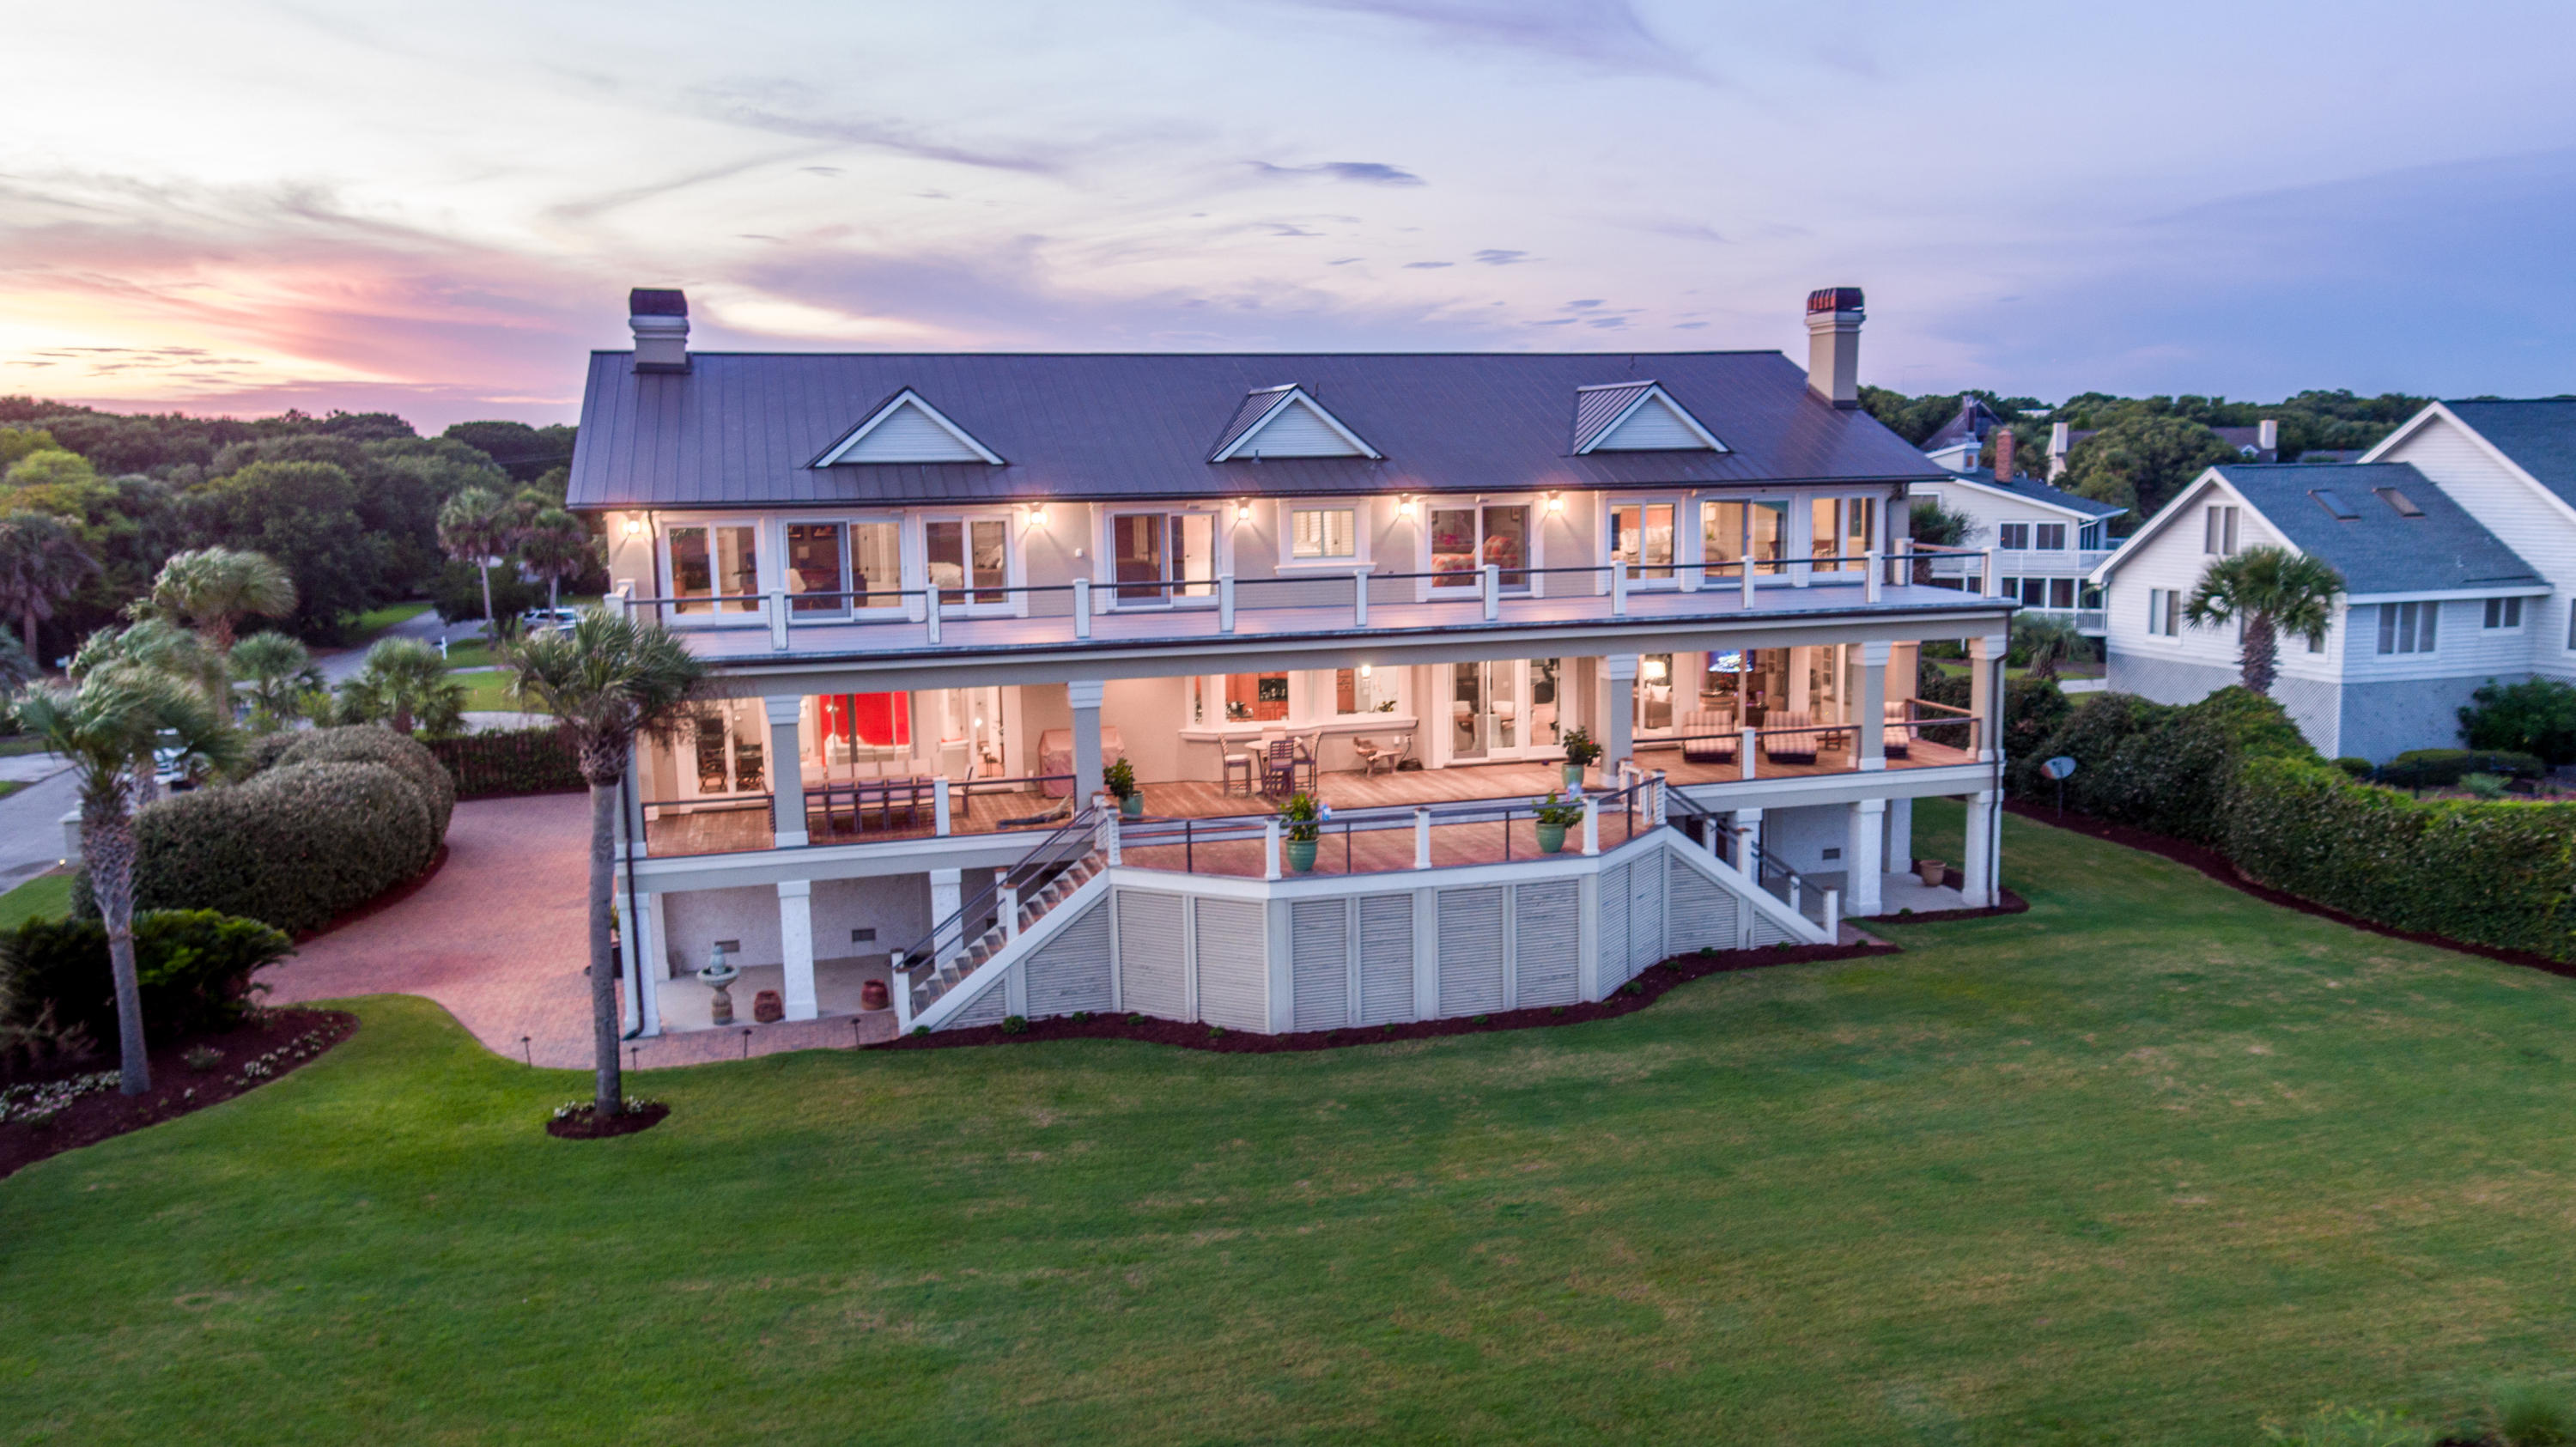 Isle of Palms Homes For Sale - 2 50th, Isle of Palms, SC - 10